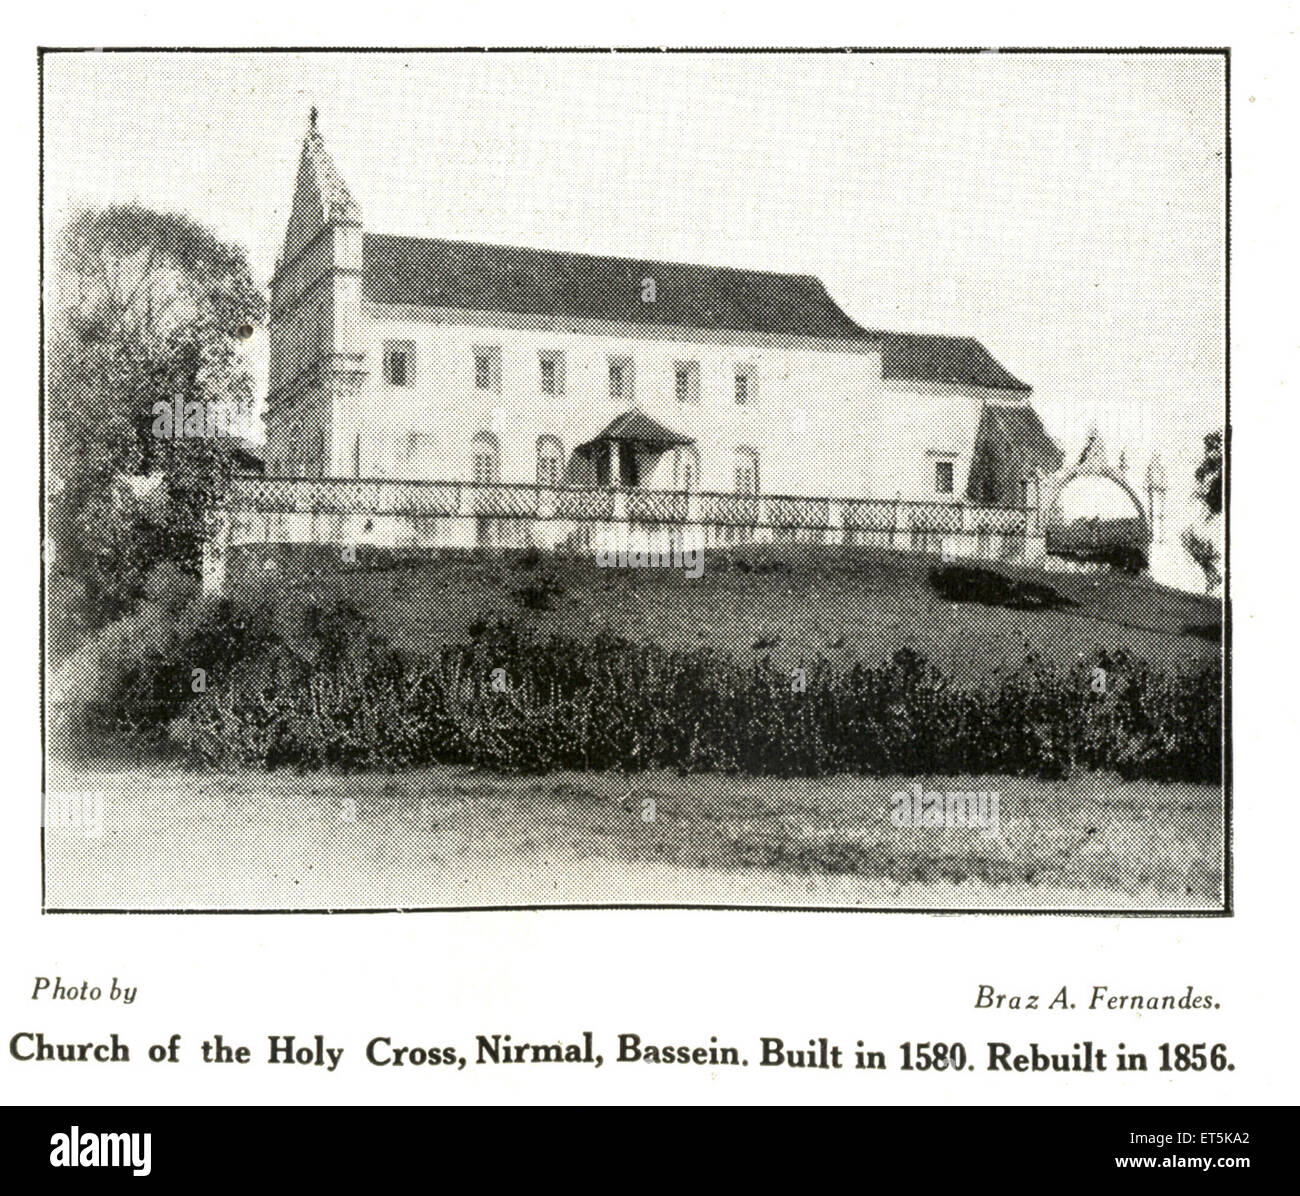 Catholic Community Church of the Holy Cross ; Nirmal ; Bassein built in 1580 rebuilt in 1856 ; Vasai ; Maharashtra - Stock Image